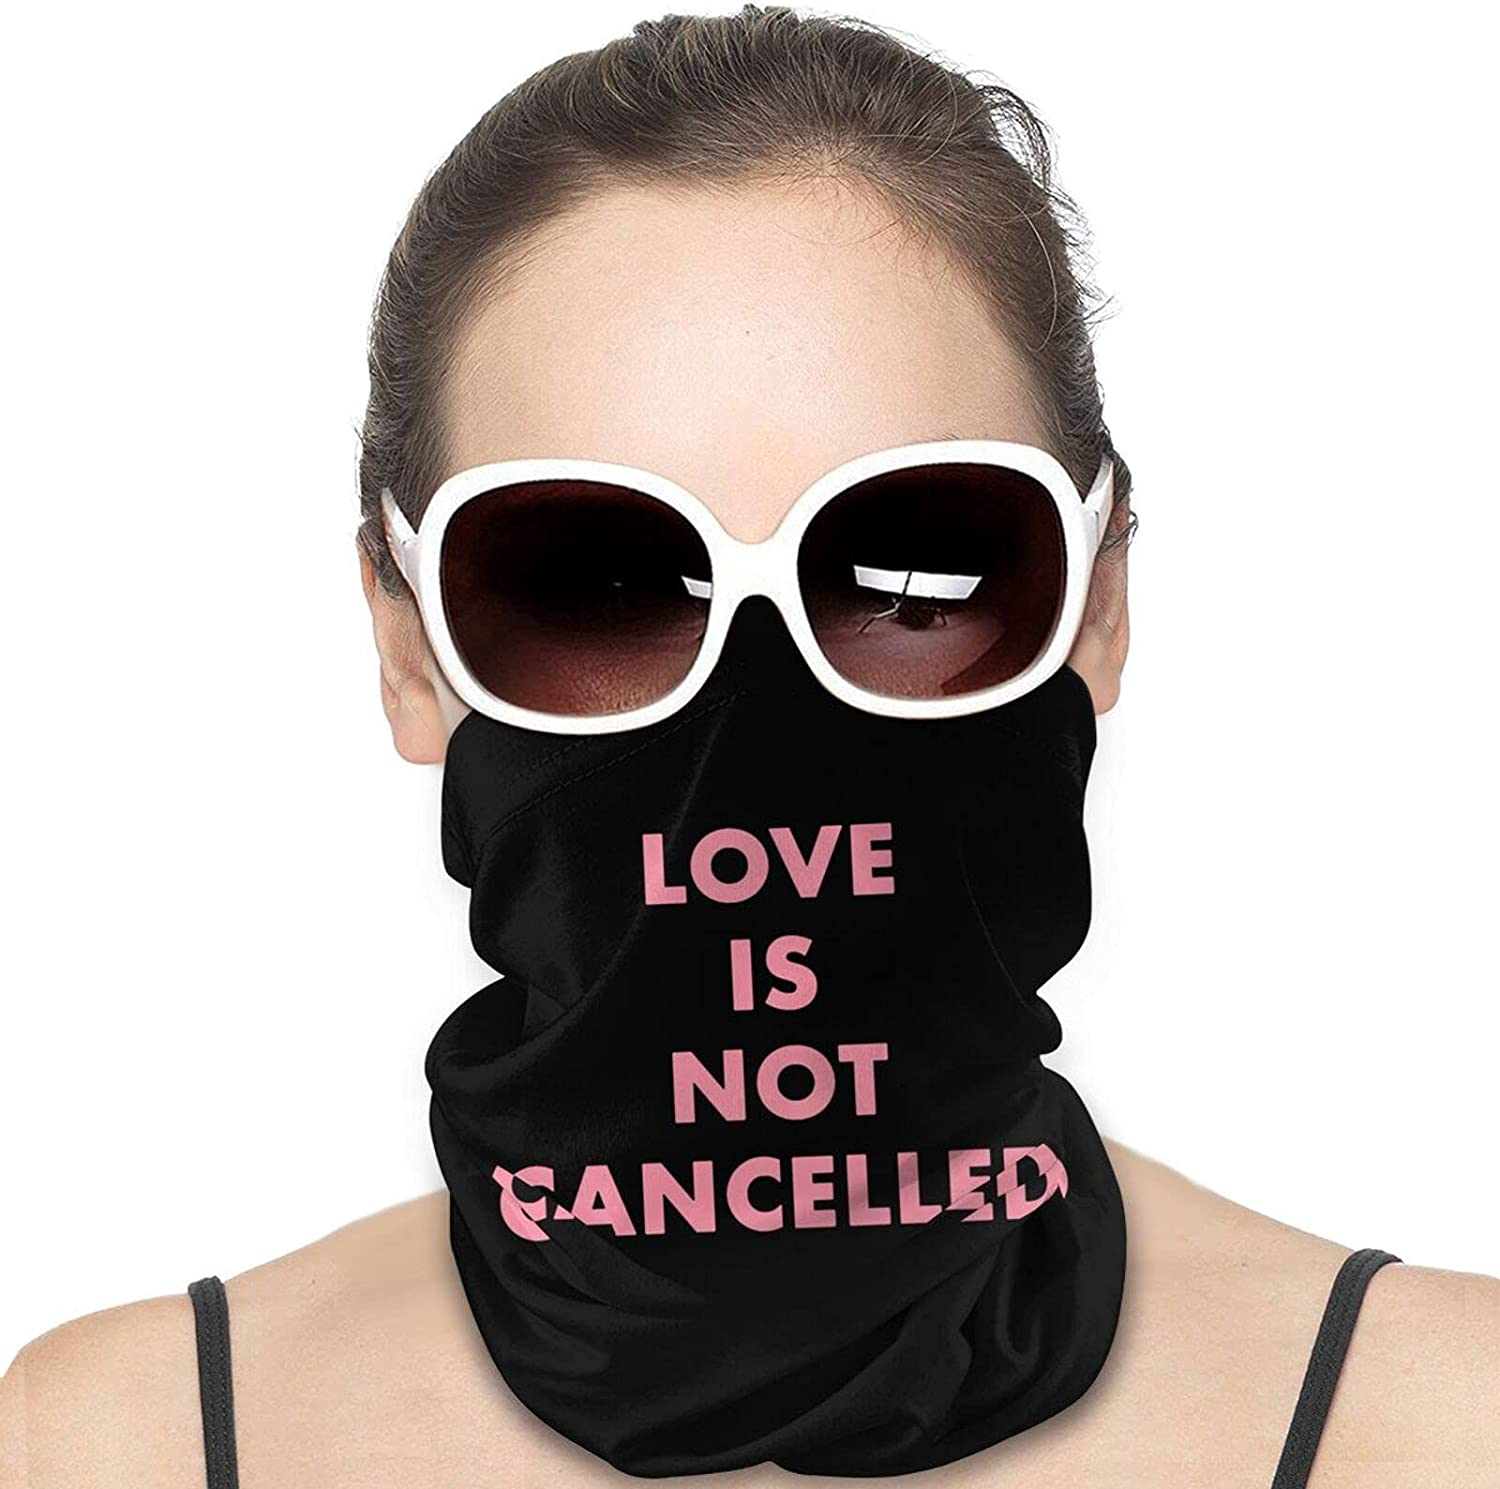 Love Is Not Cancelled Round Neck Gaiter Bandnas Face Cover Uv Protection Prevent bask in Ice Scarf Headbands Perfect for Motorcycle Cycling Running Festival Raves Outdoors